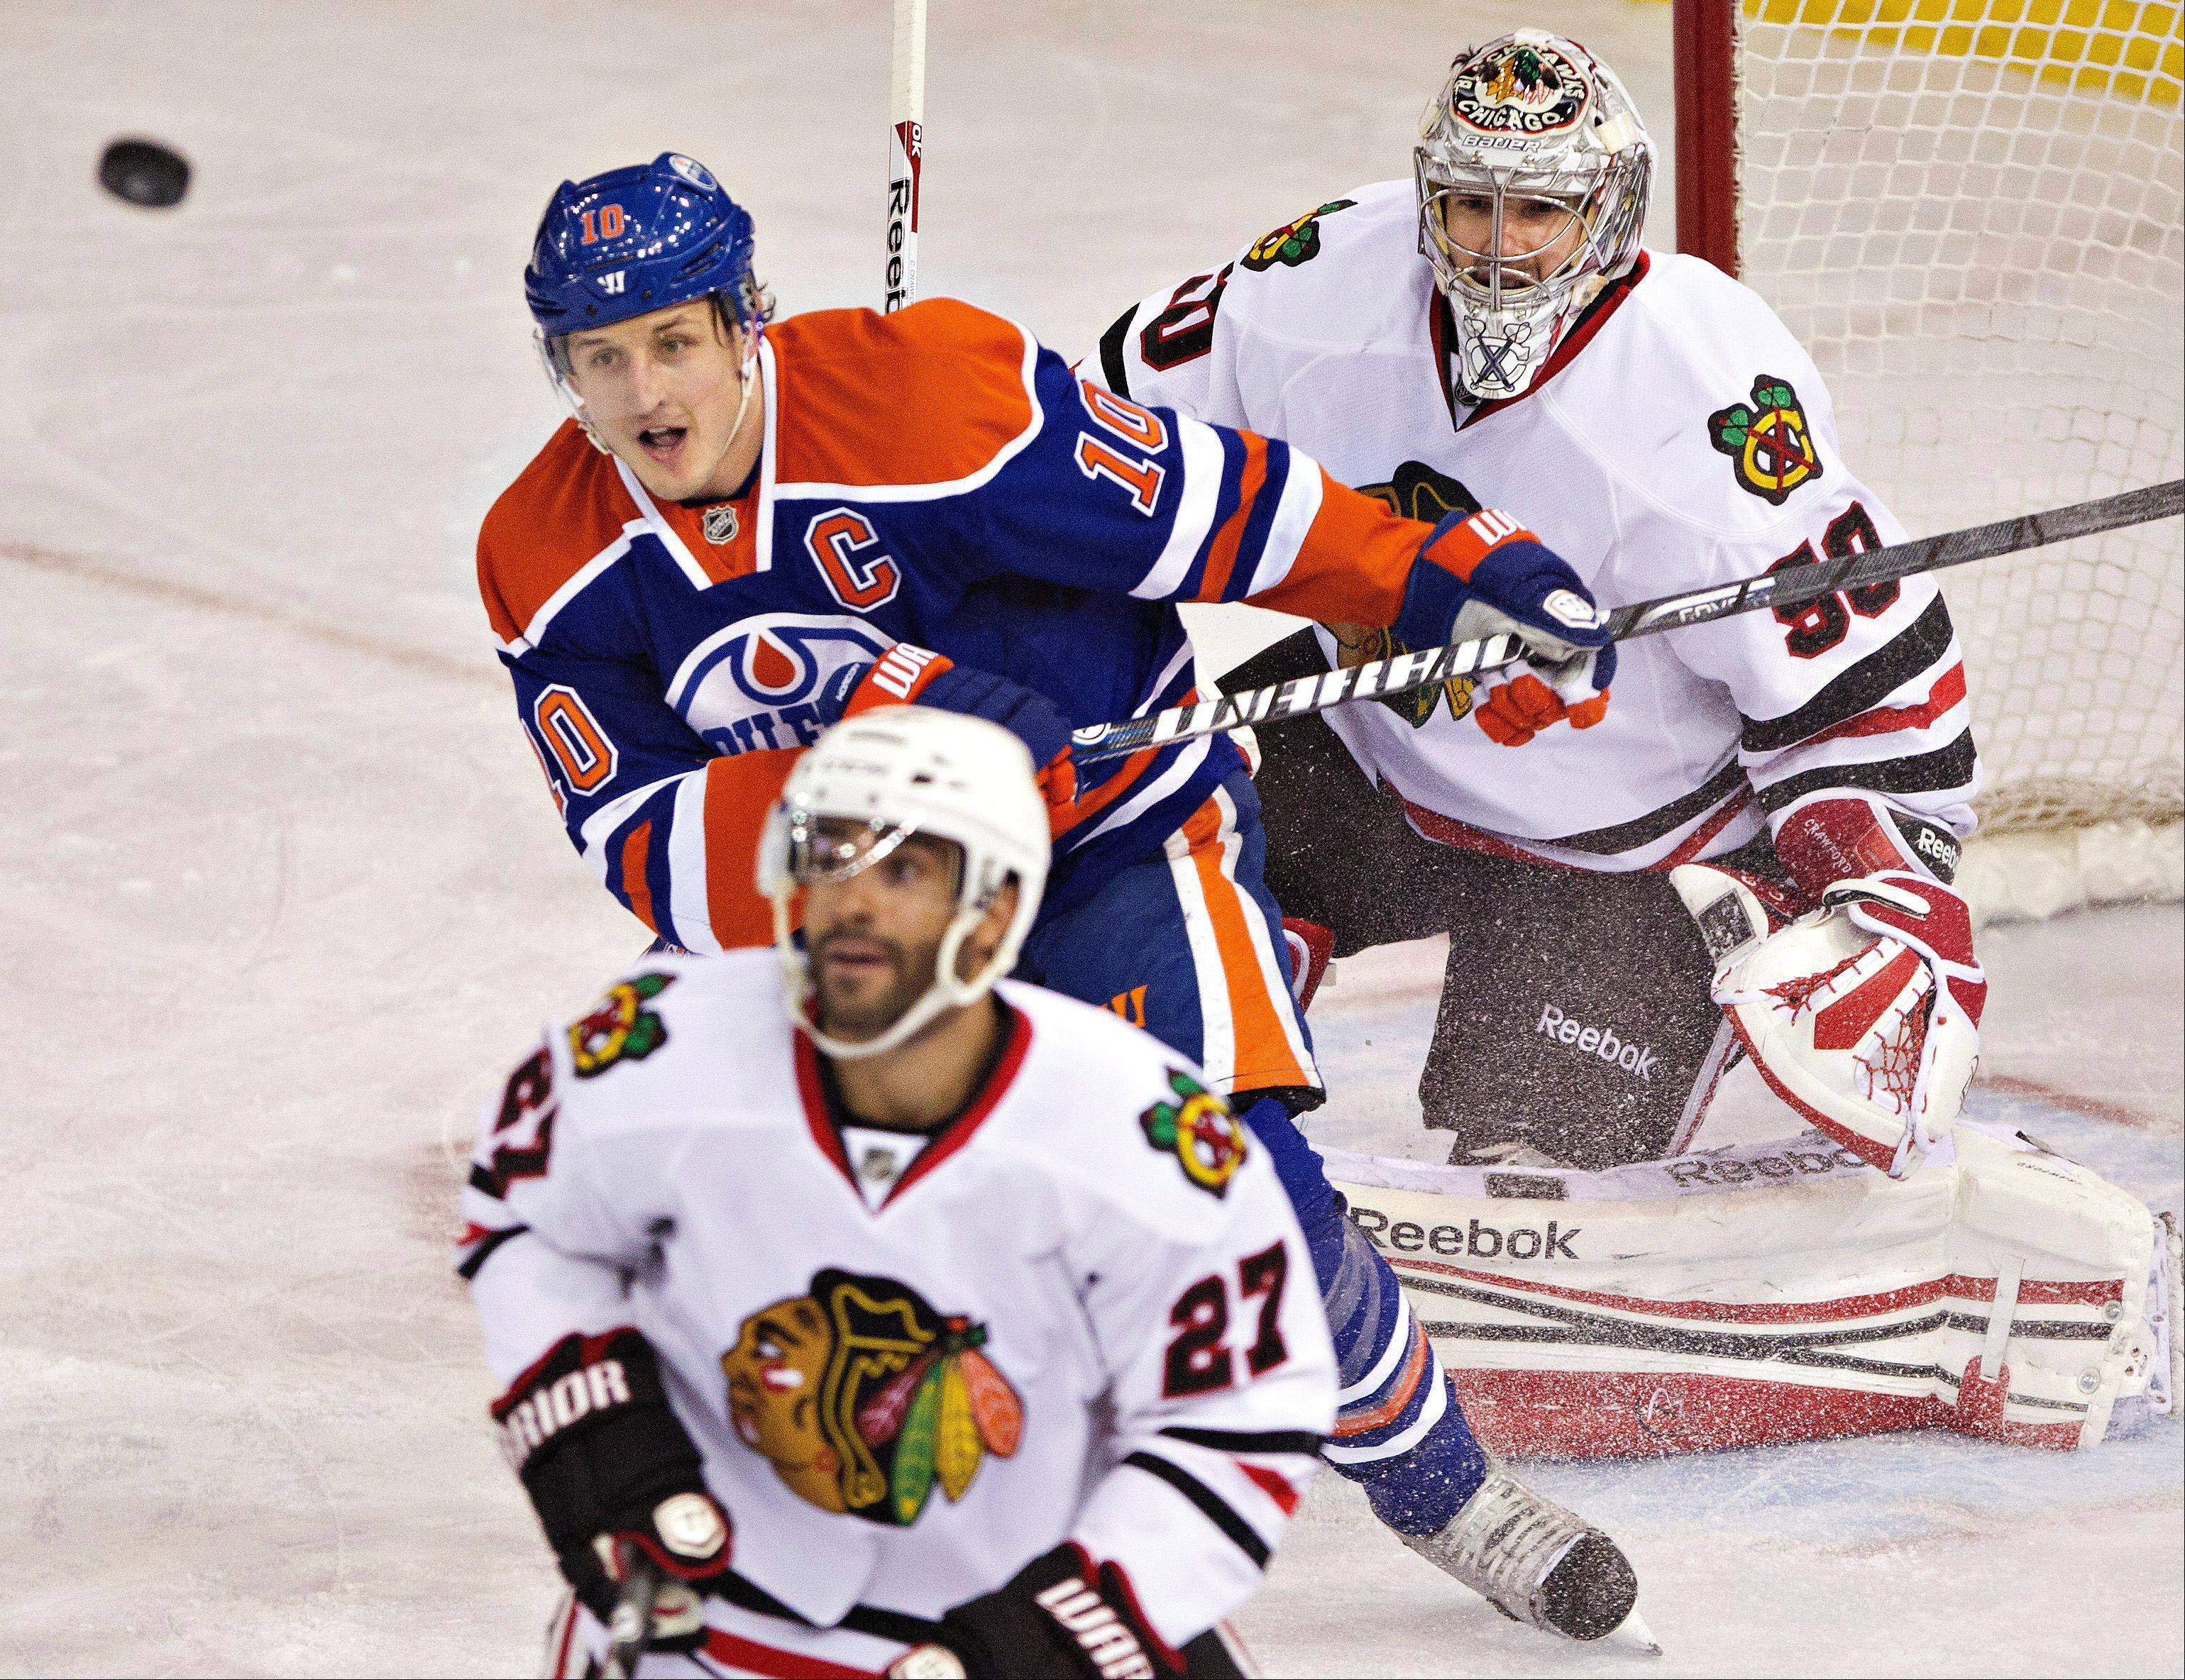 Blackhawks goalie Corey Crawford, top, Edmonton Oilers� Shawn Horcoff (10) and Blackhawks� Johnny Oduya (27) look for the rebound Wednesday night in Edmonton.